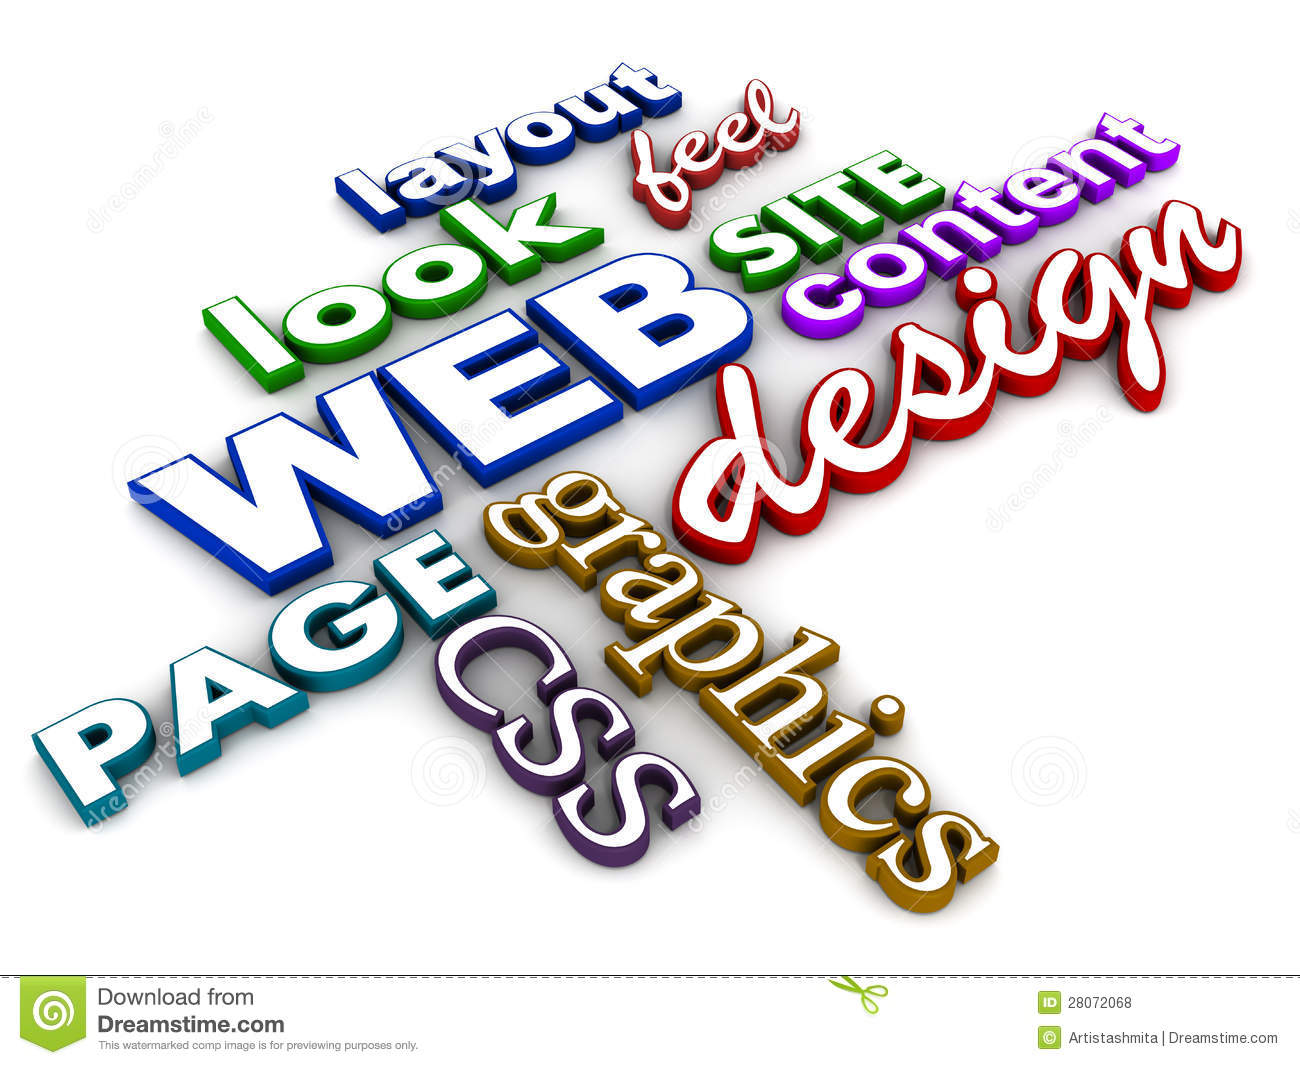 Free clipart for web design. Panda images